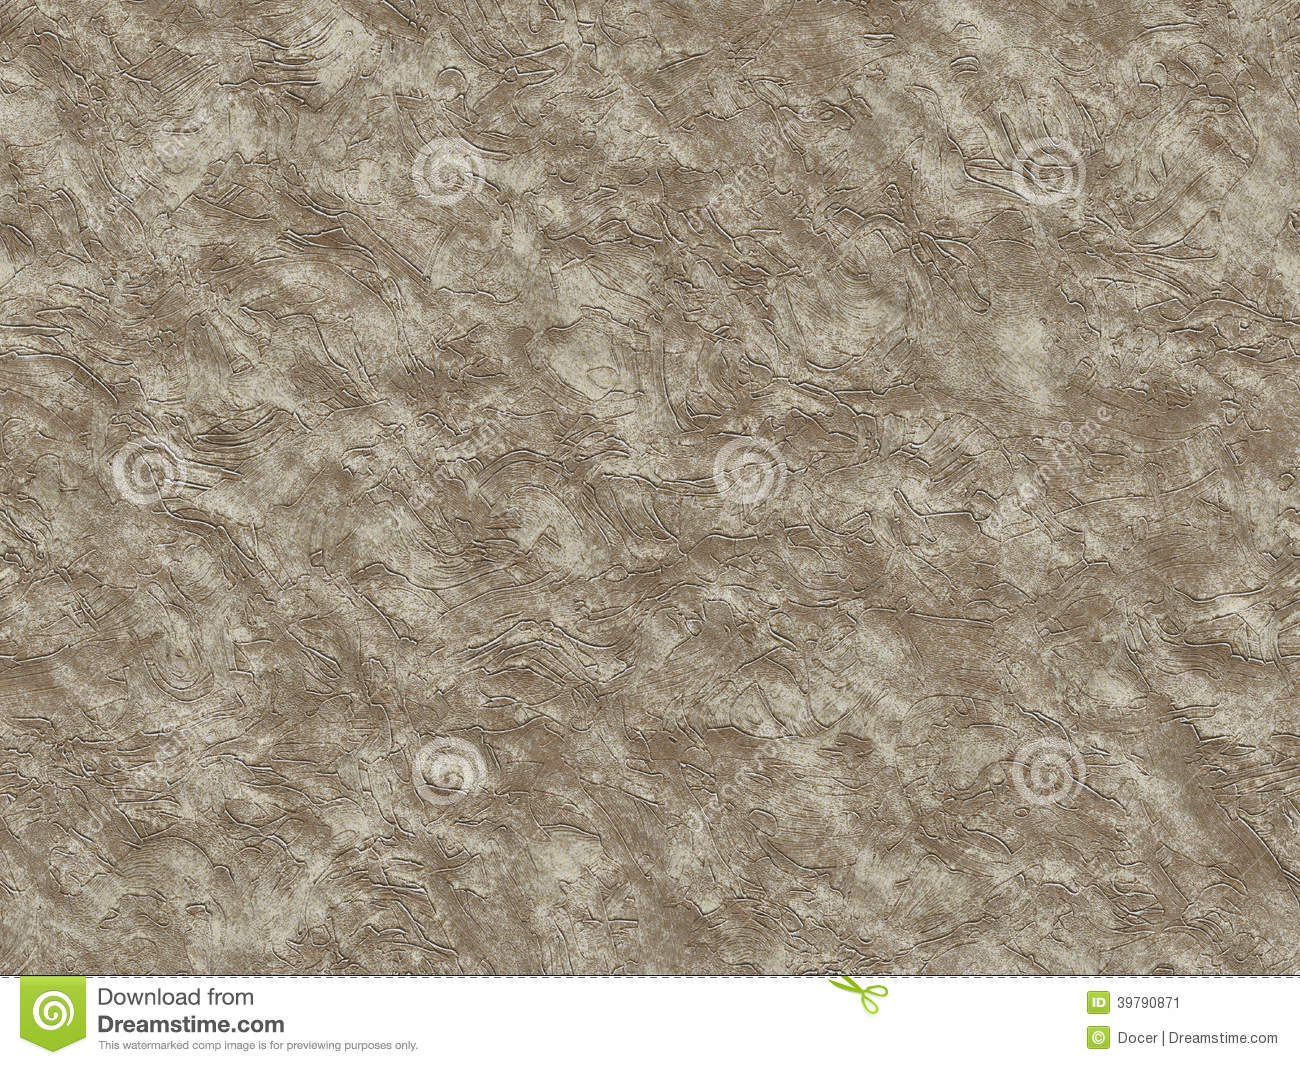 Natural brown rock carving texture painted backgrounds